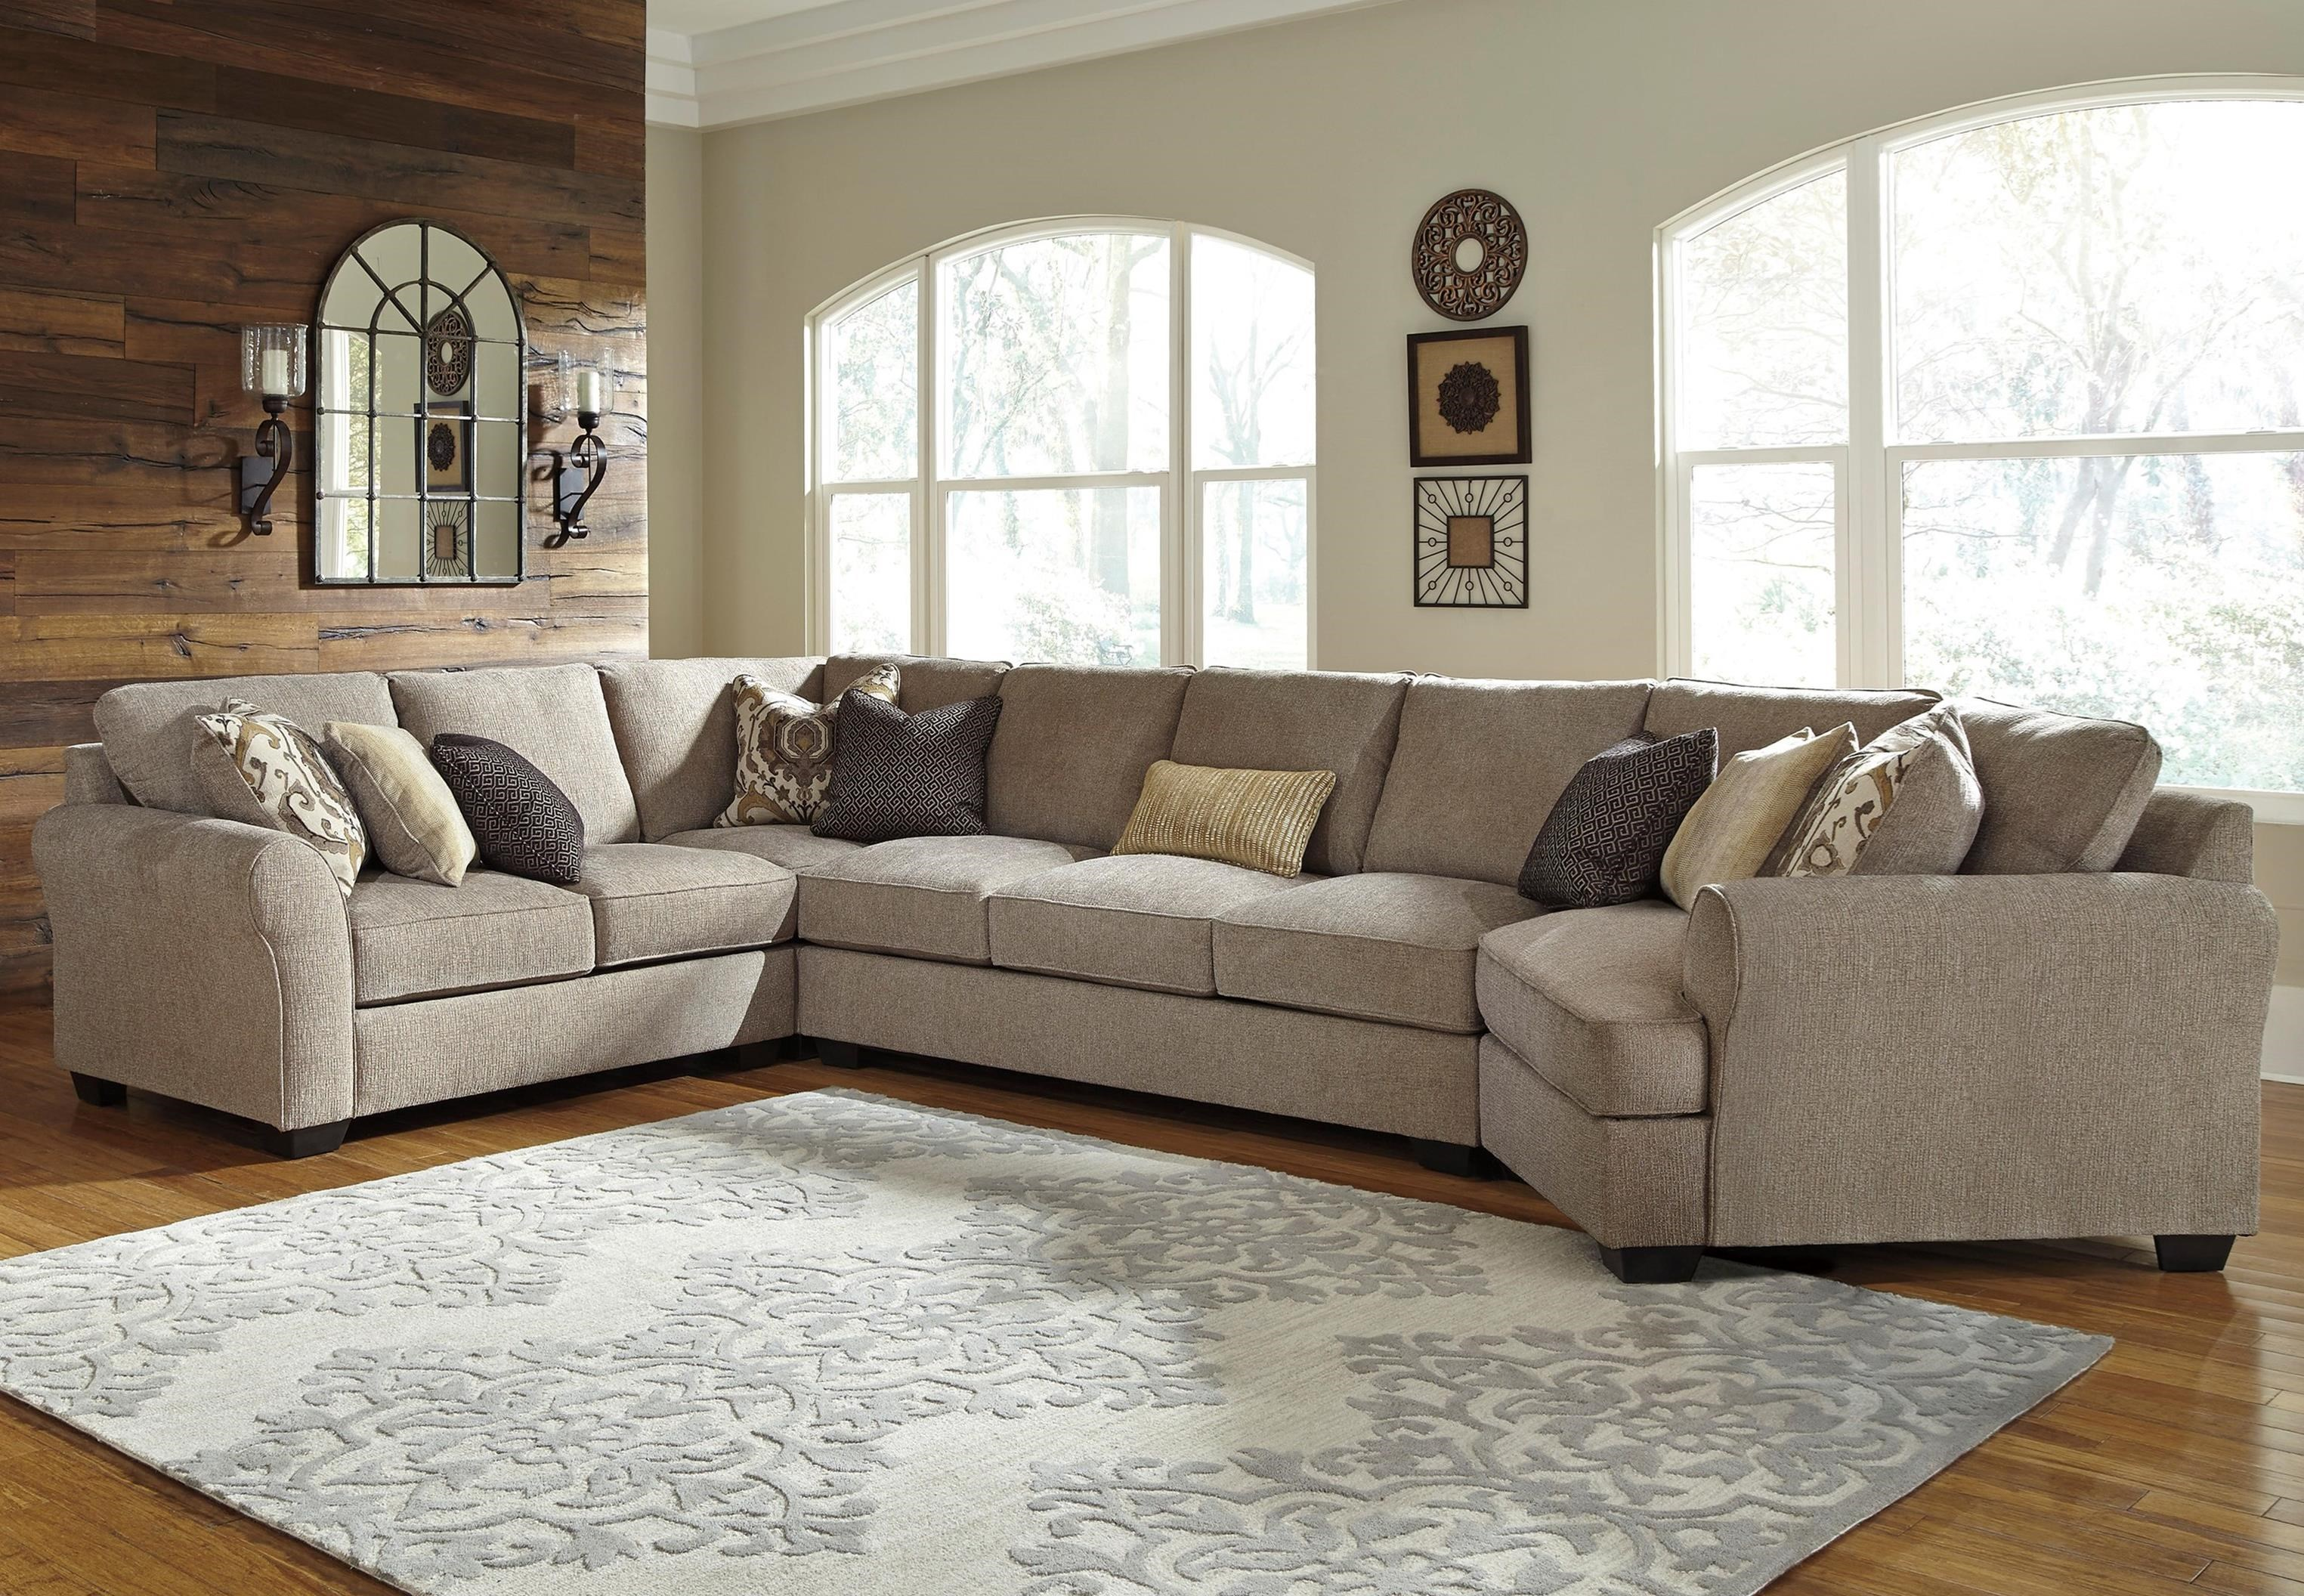 Pantomine 4-Piece Sectional w/ Cuddler & Arrnless Sofa by Benchcraft at Northeast Factory Direct